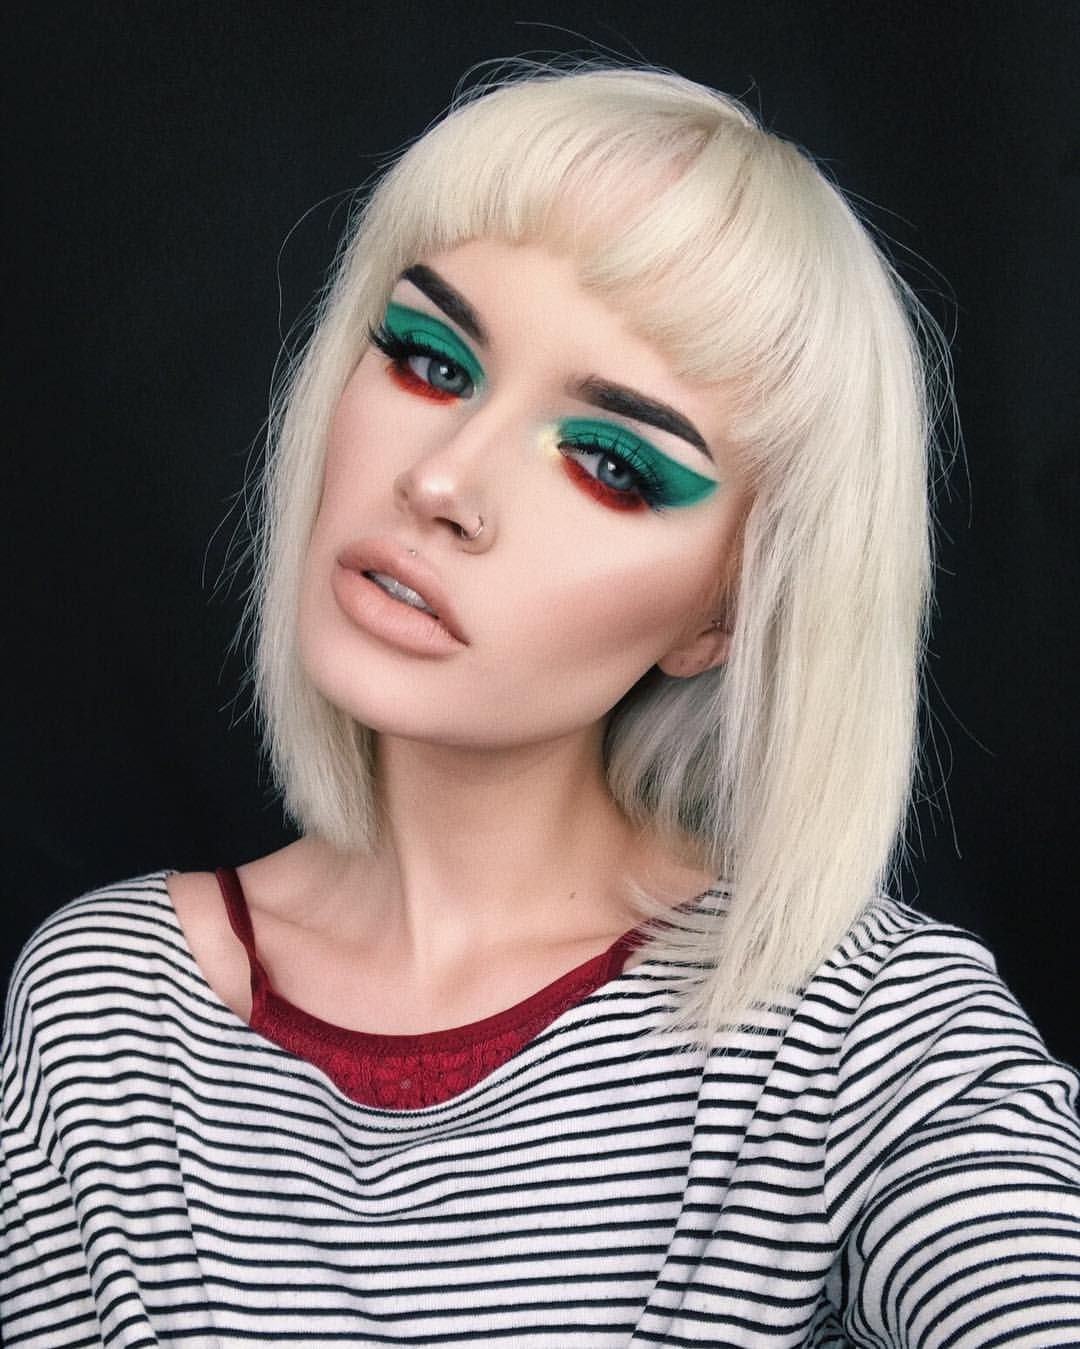 847 Likes 13 Comments Ash Atleeeey On Instagram